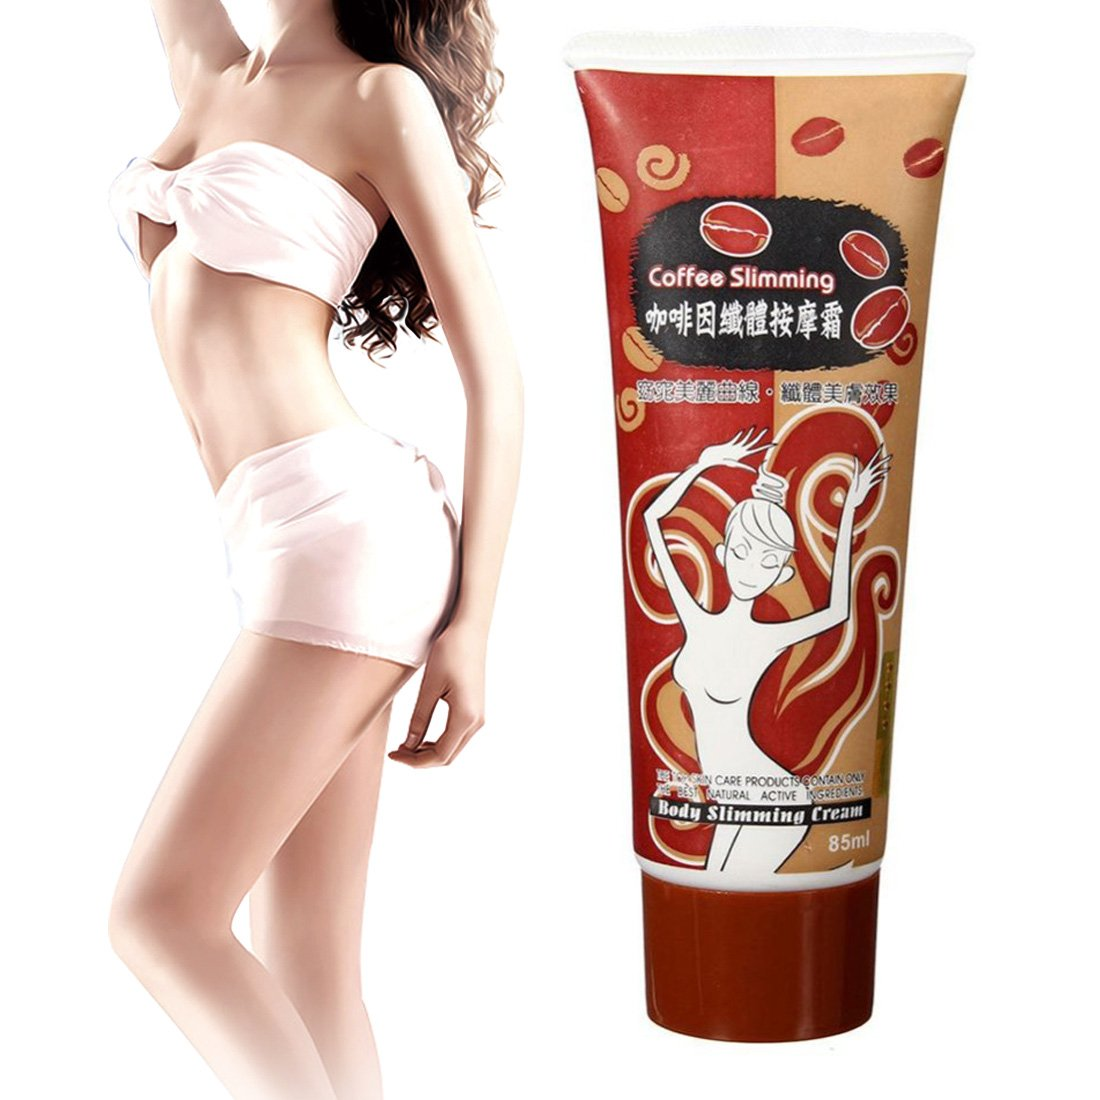 Bath & Shower Slimming Cream Weight Loss Hot Burning Heating Fat Leg Thigh Arm Hip Lose Weight Stomach Anti Cellulite Massage Care Tool